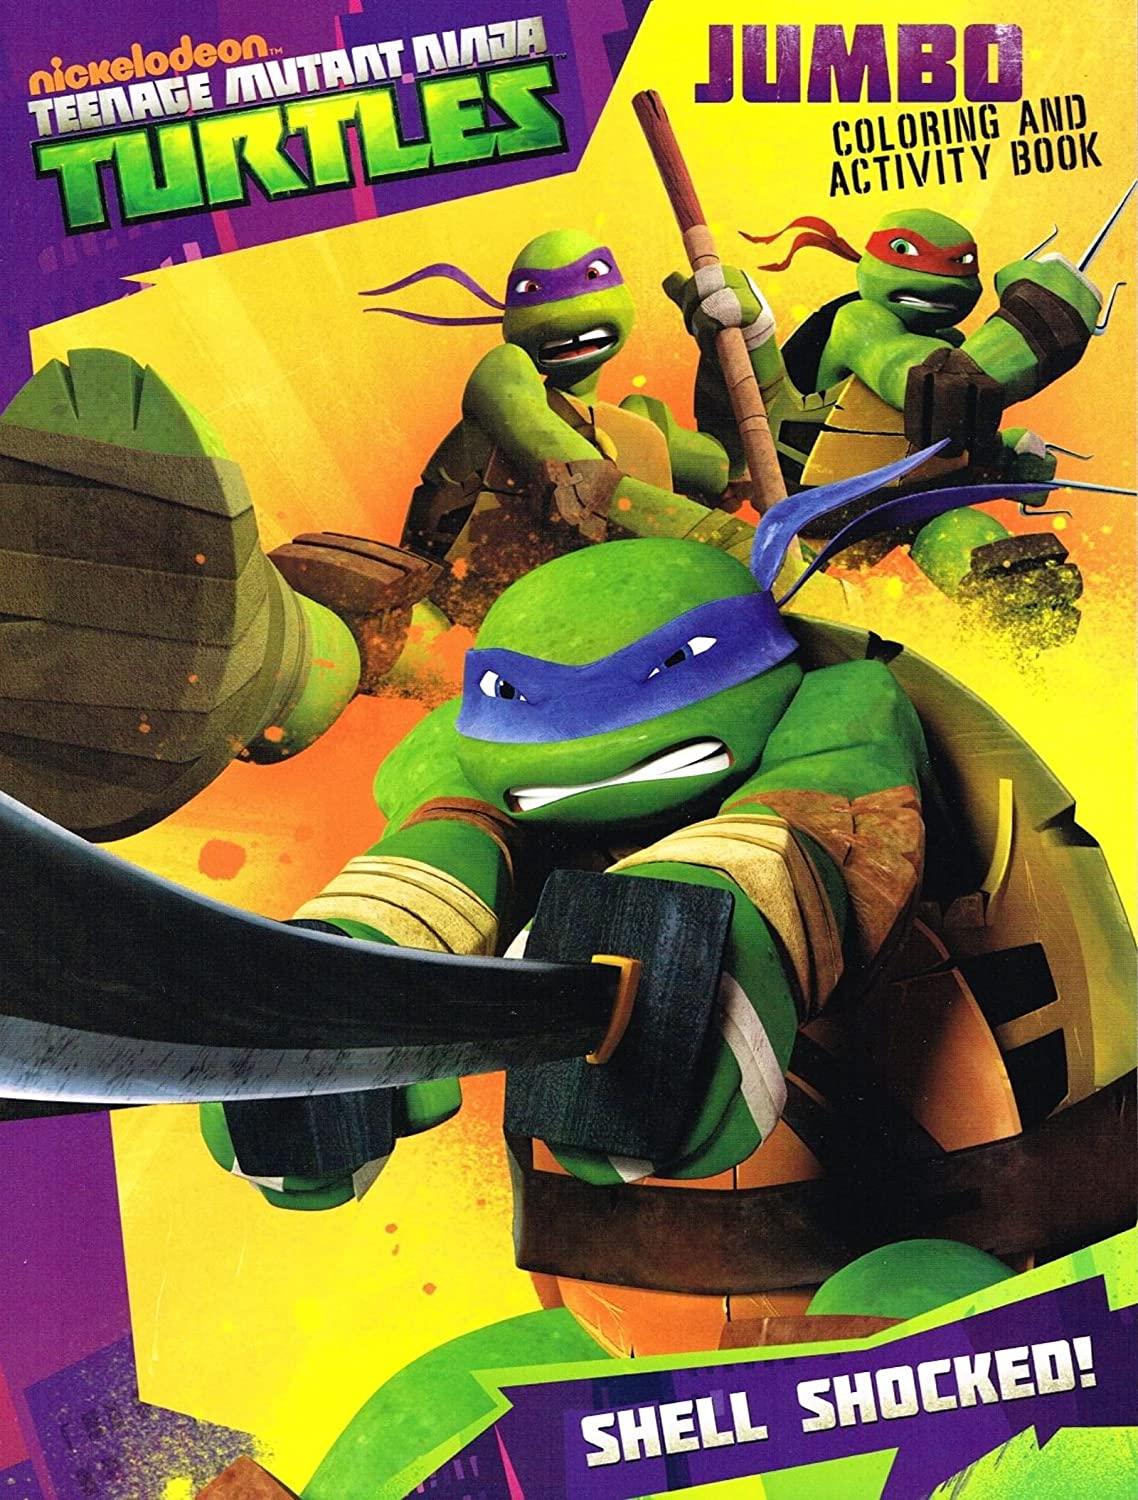 Amazon.com: TMNT Teenage Mutant Ninja Turtles Coloring and Activity ...